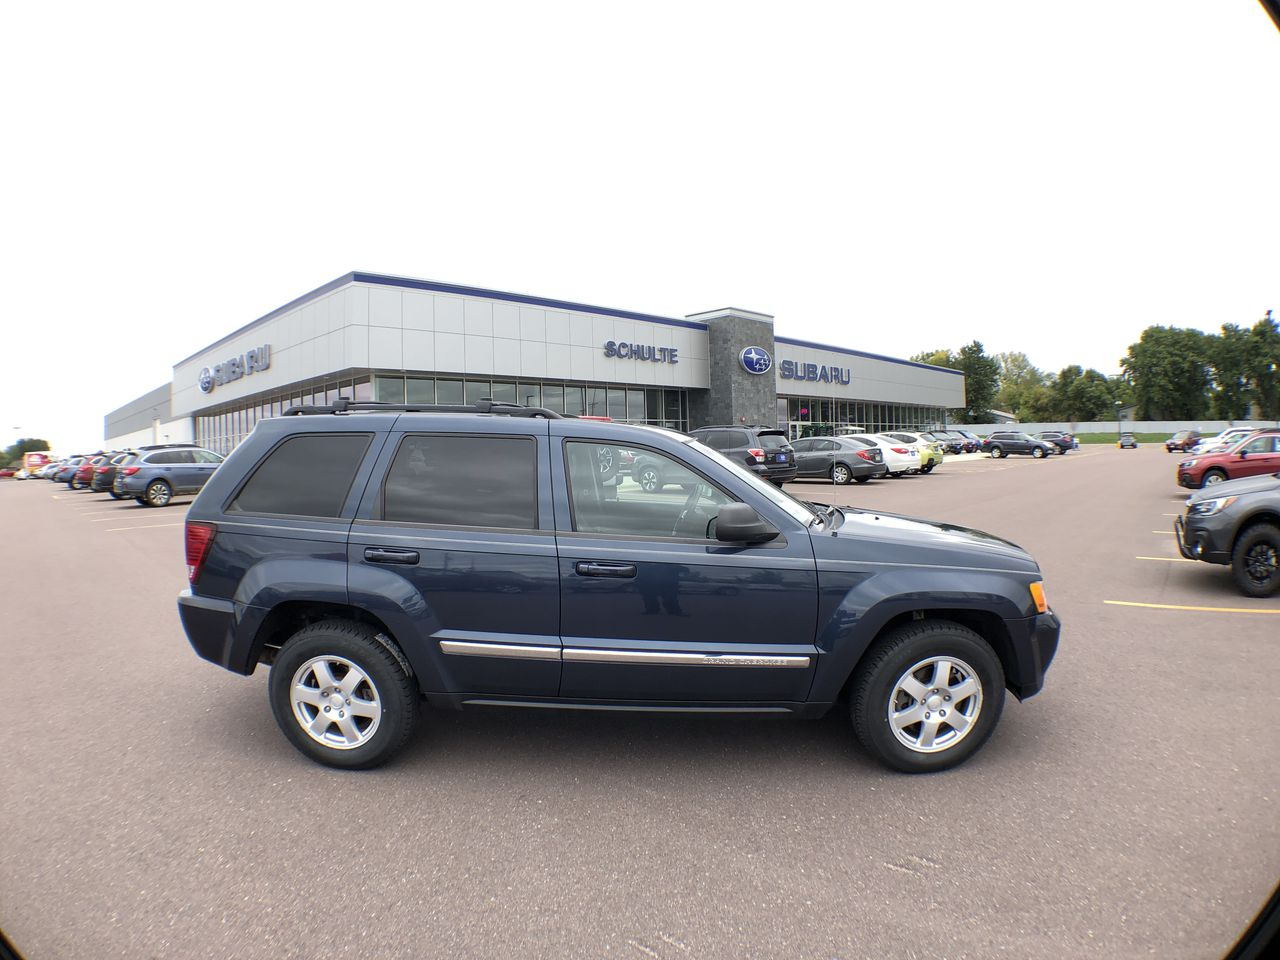 Marvelous Used 2010 Jeep Grand Cherokee Laredo SUV For Sale In Sioux Falls, SD At  Schulte